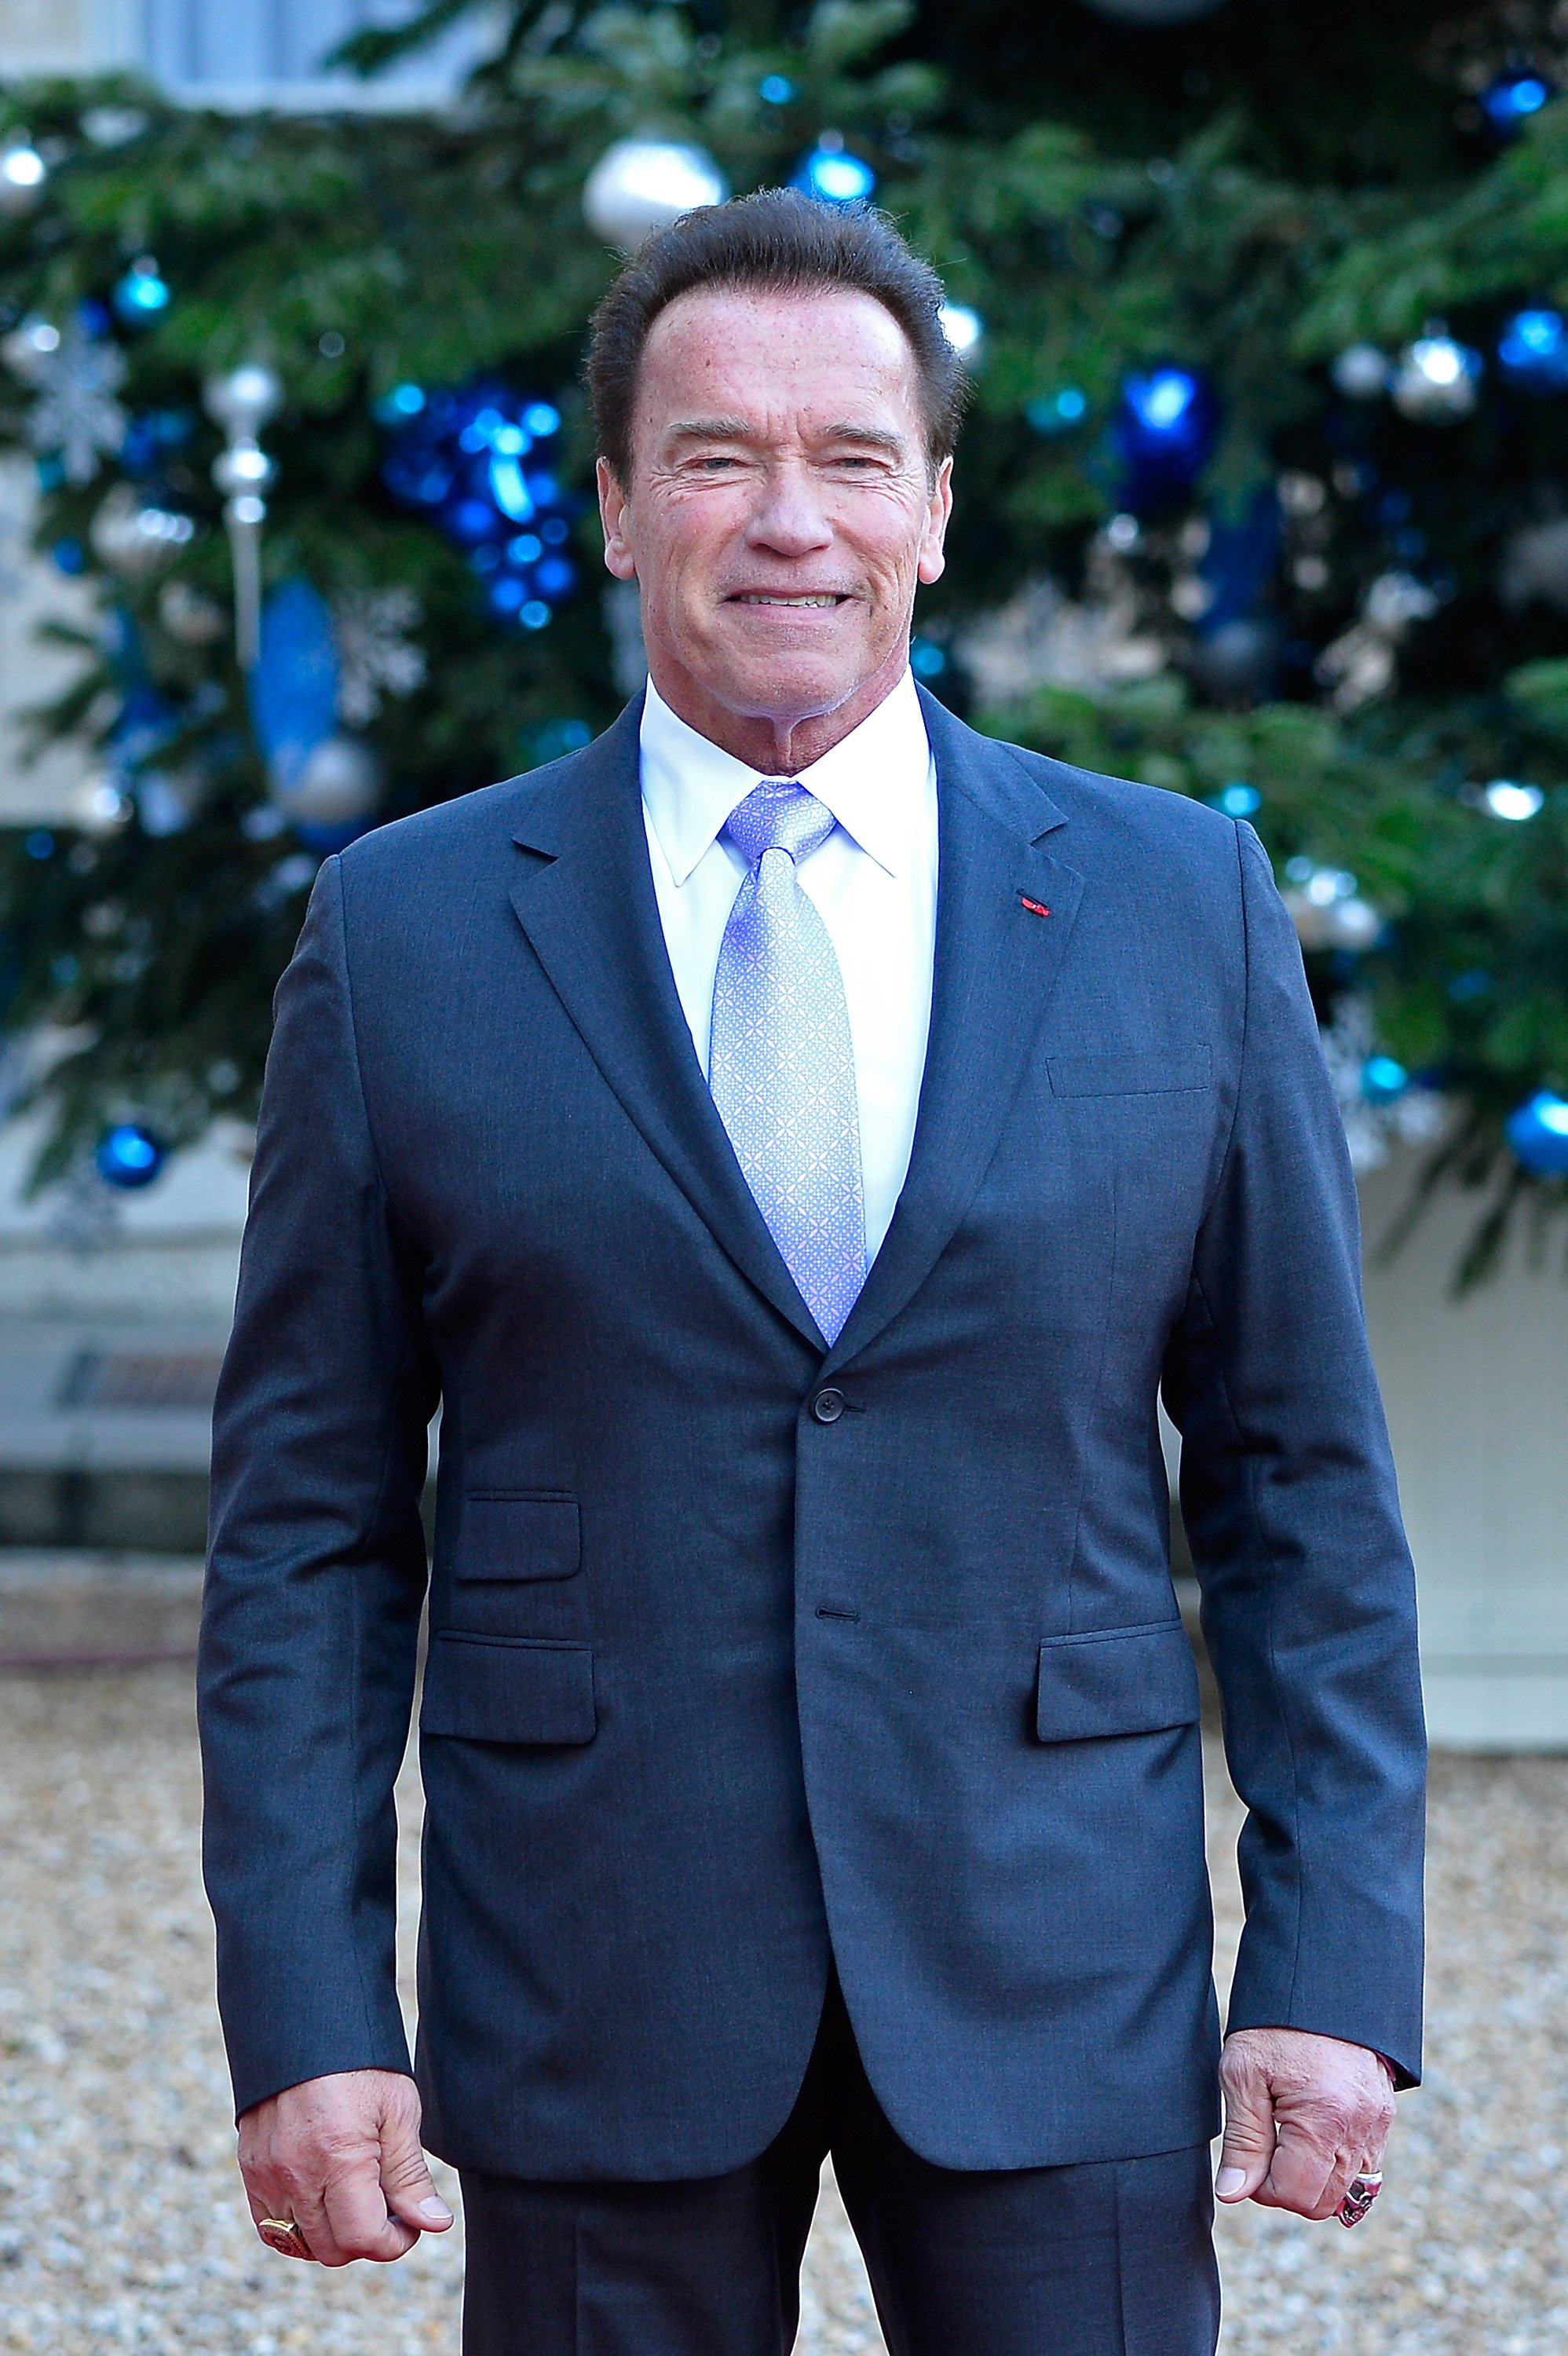 Arnold Schwarzenegger arrives for a meeting with French President Emmanuel Macron on December 12, 2017, in Paris, France. | Source: Getty Images.